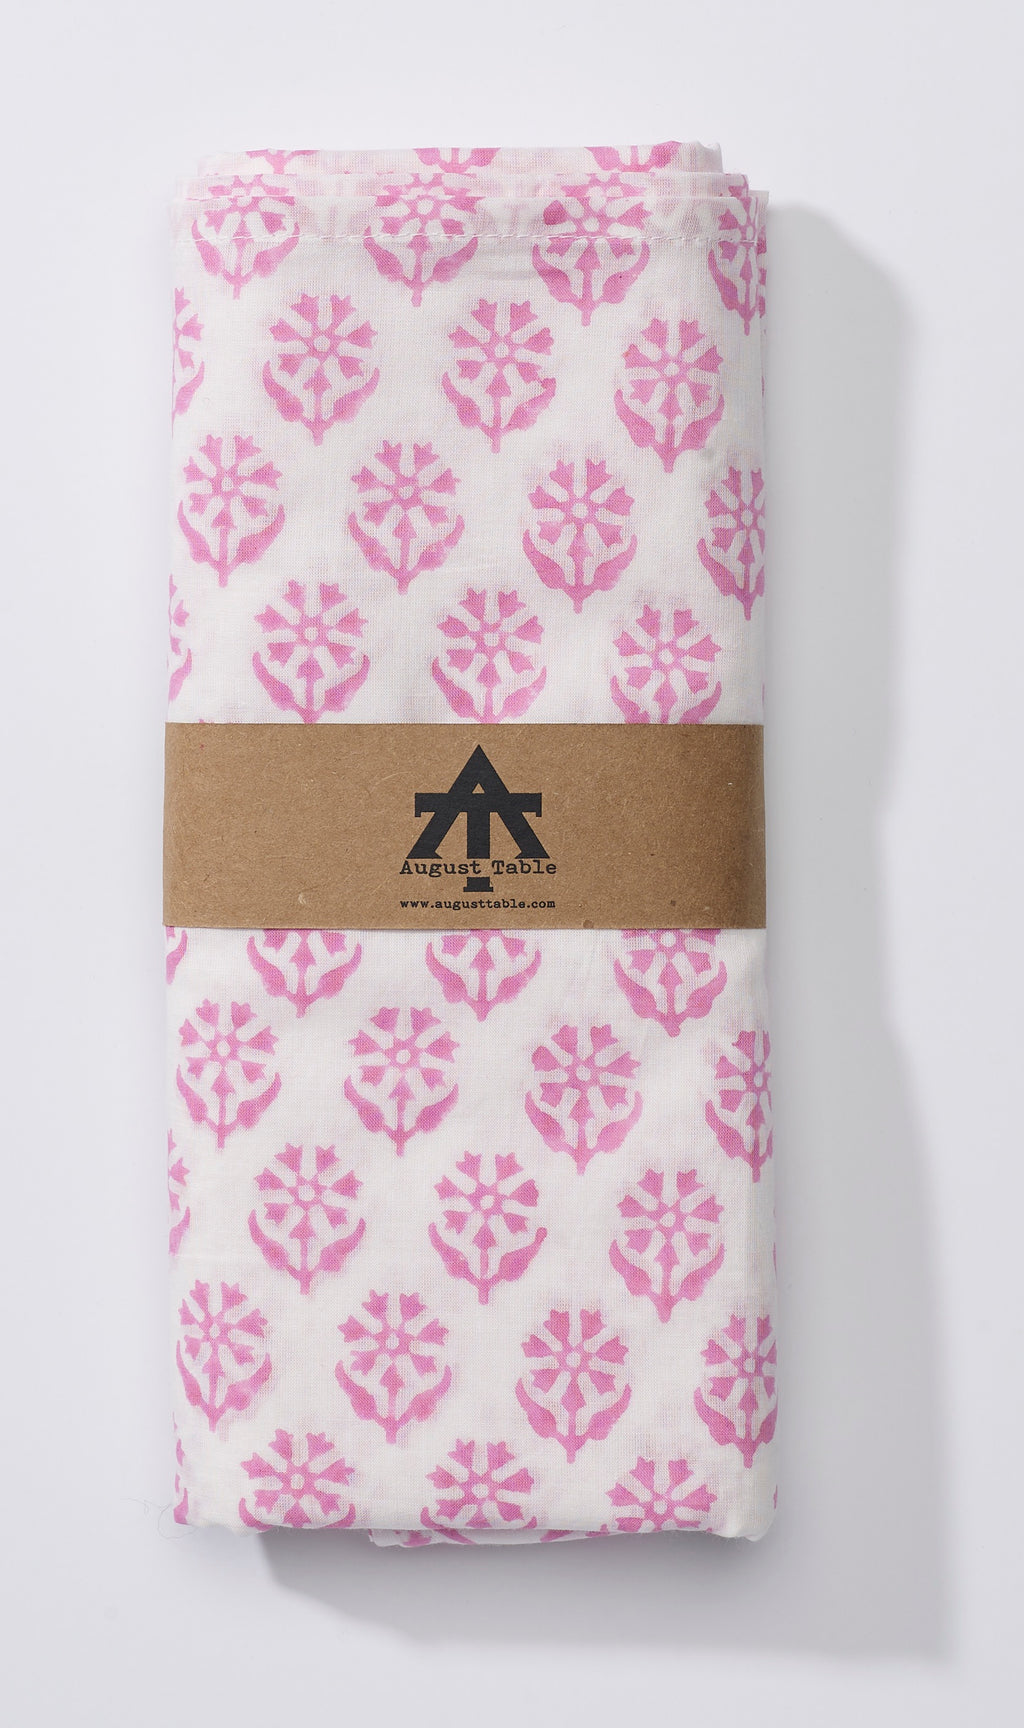 Sequoia print Lightweight Tablecloth in Kestrel Pink